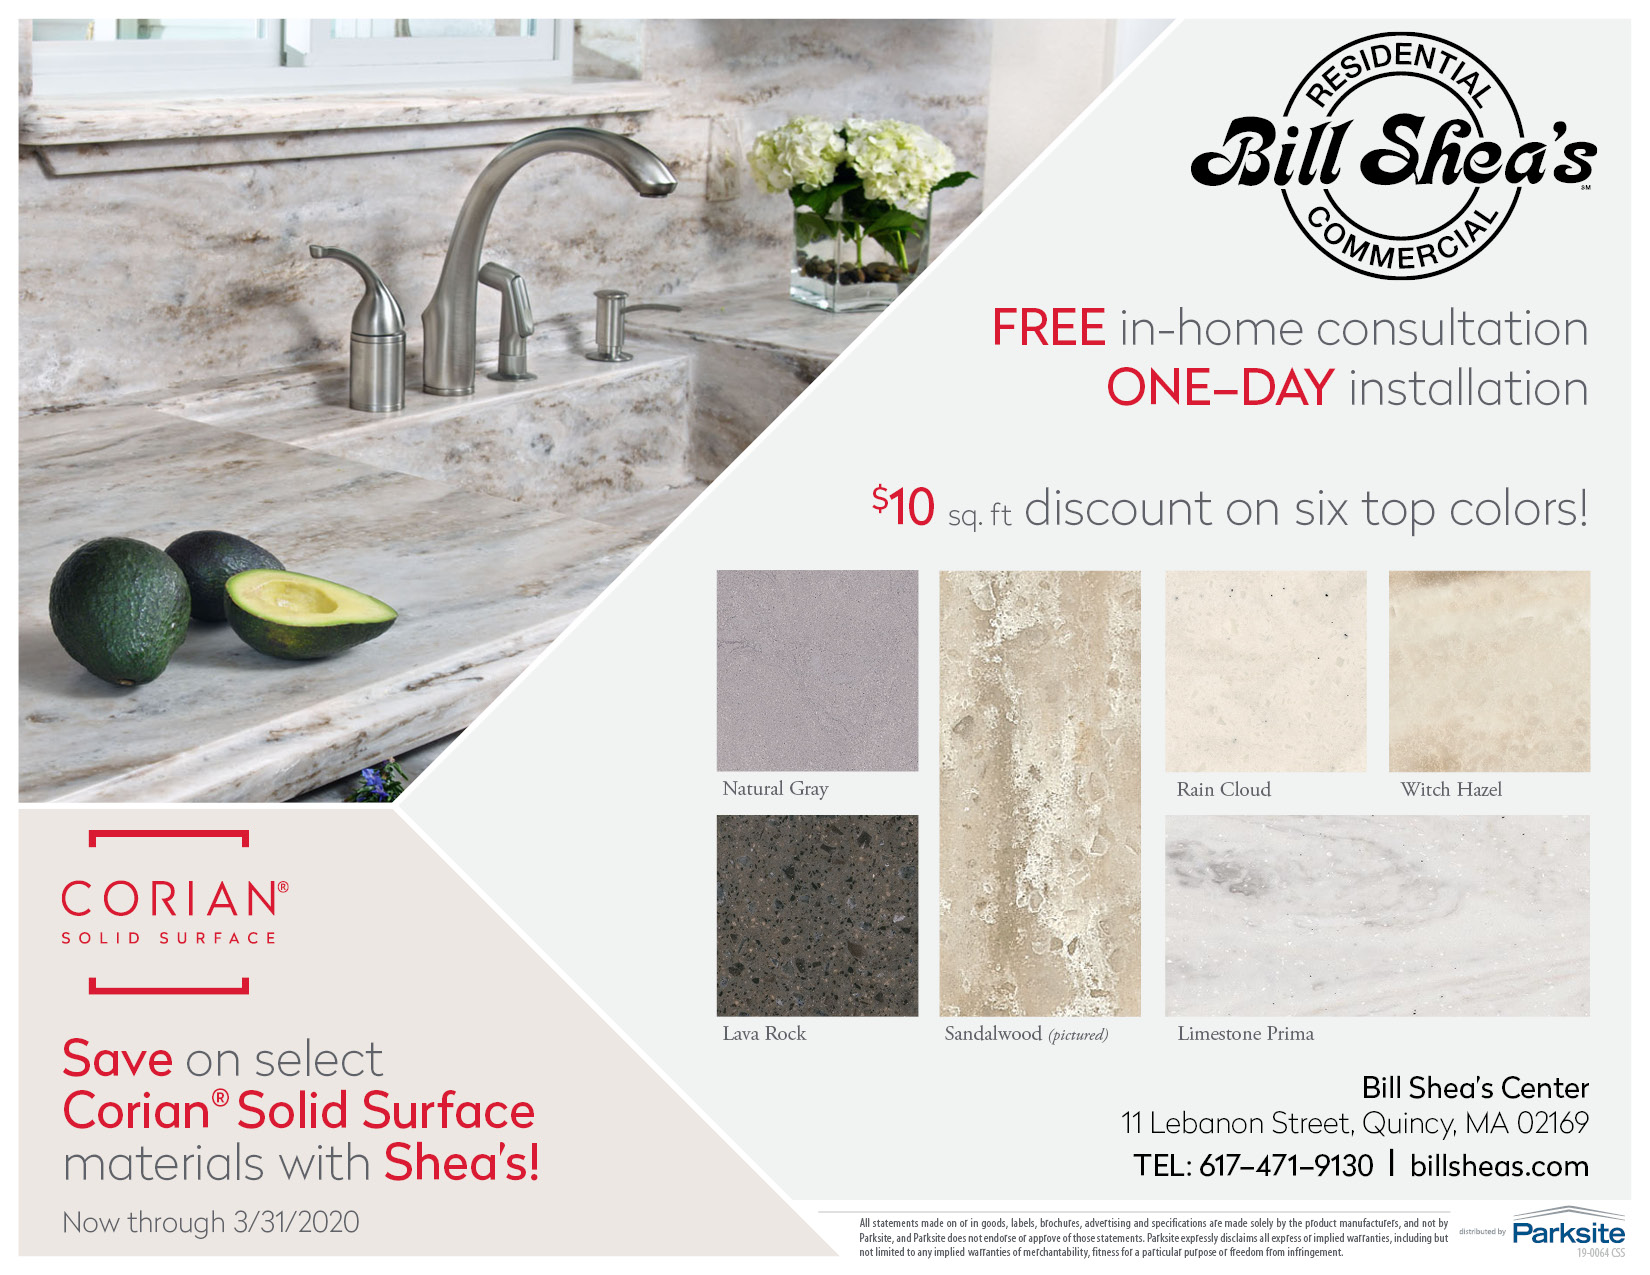 At Bill Sheas We Make Replacing Your Old Countertop With A New Corian Quartz Or Natural Stone Countertop As Easy As Doing Your Nails Bill Shea S Replacement Countertops